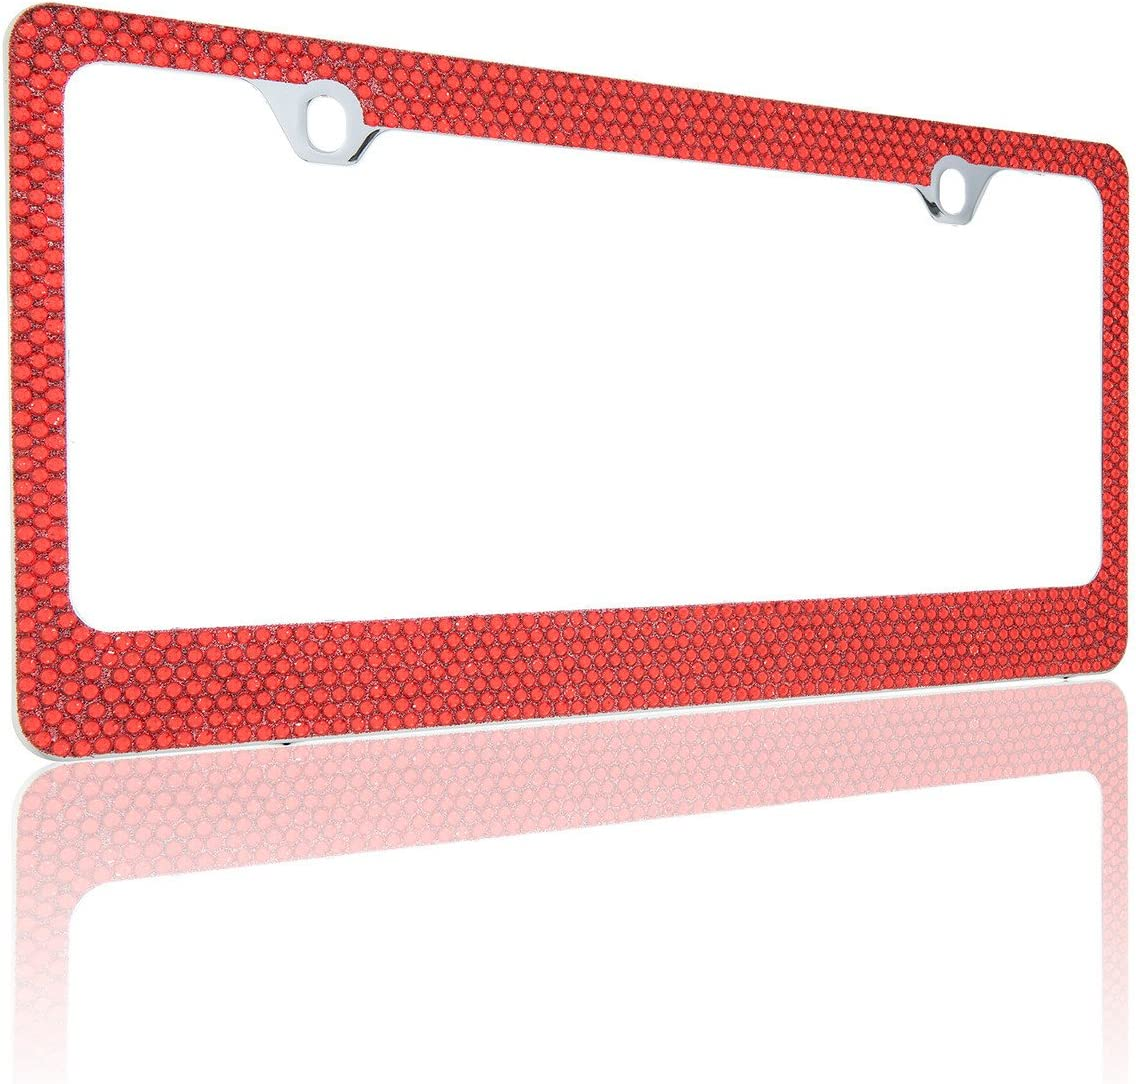 1, Zebra BLVD-LPF OBEY YOUR LUXURY Popular Bling 7 Row Crystal Metal Chrome License Plate Frame with Screw Caps